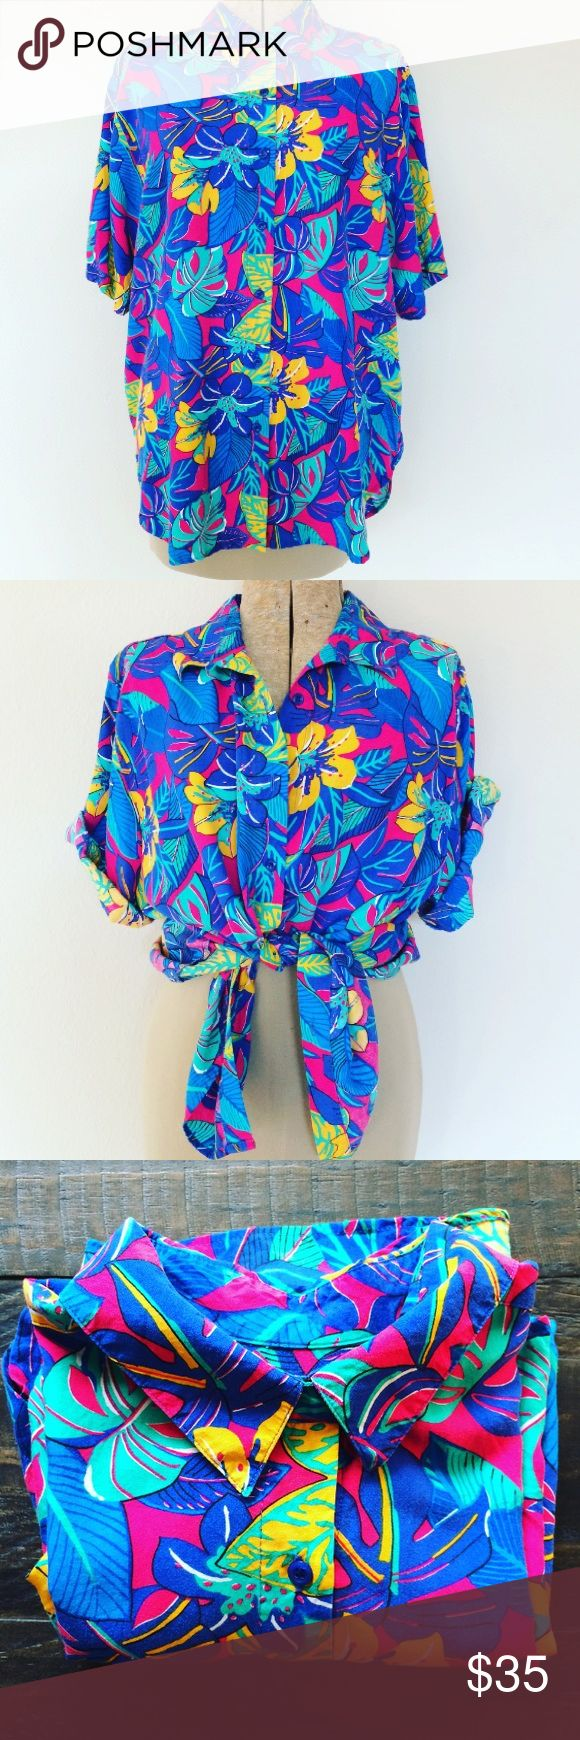 Vintage button down Blouse tropical print shirt L Vintage Pre-owned Great condition! One size fits most. Bust: 24 in Length: 27 in Tagged Large.. Brand unknown ( tag removed) 💕Wear as a blouse, belted dress or even swimsuit cover.  Bright tropical Floral print button down 100 % Rayon. 💐Super soft and flowy.  No trades. Happy poshing! TAGS # Hawaiian print island cruise vacation summer 2017 oversized top Tunic short sleeve flower leaf blue pink neon 80's 90's retro vintage Tops Button Down…